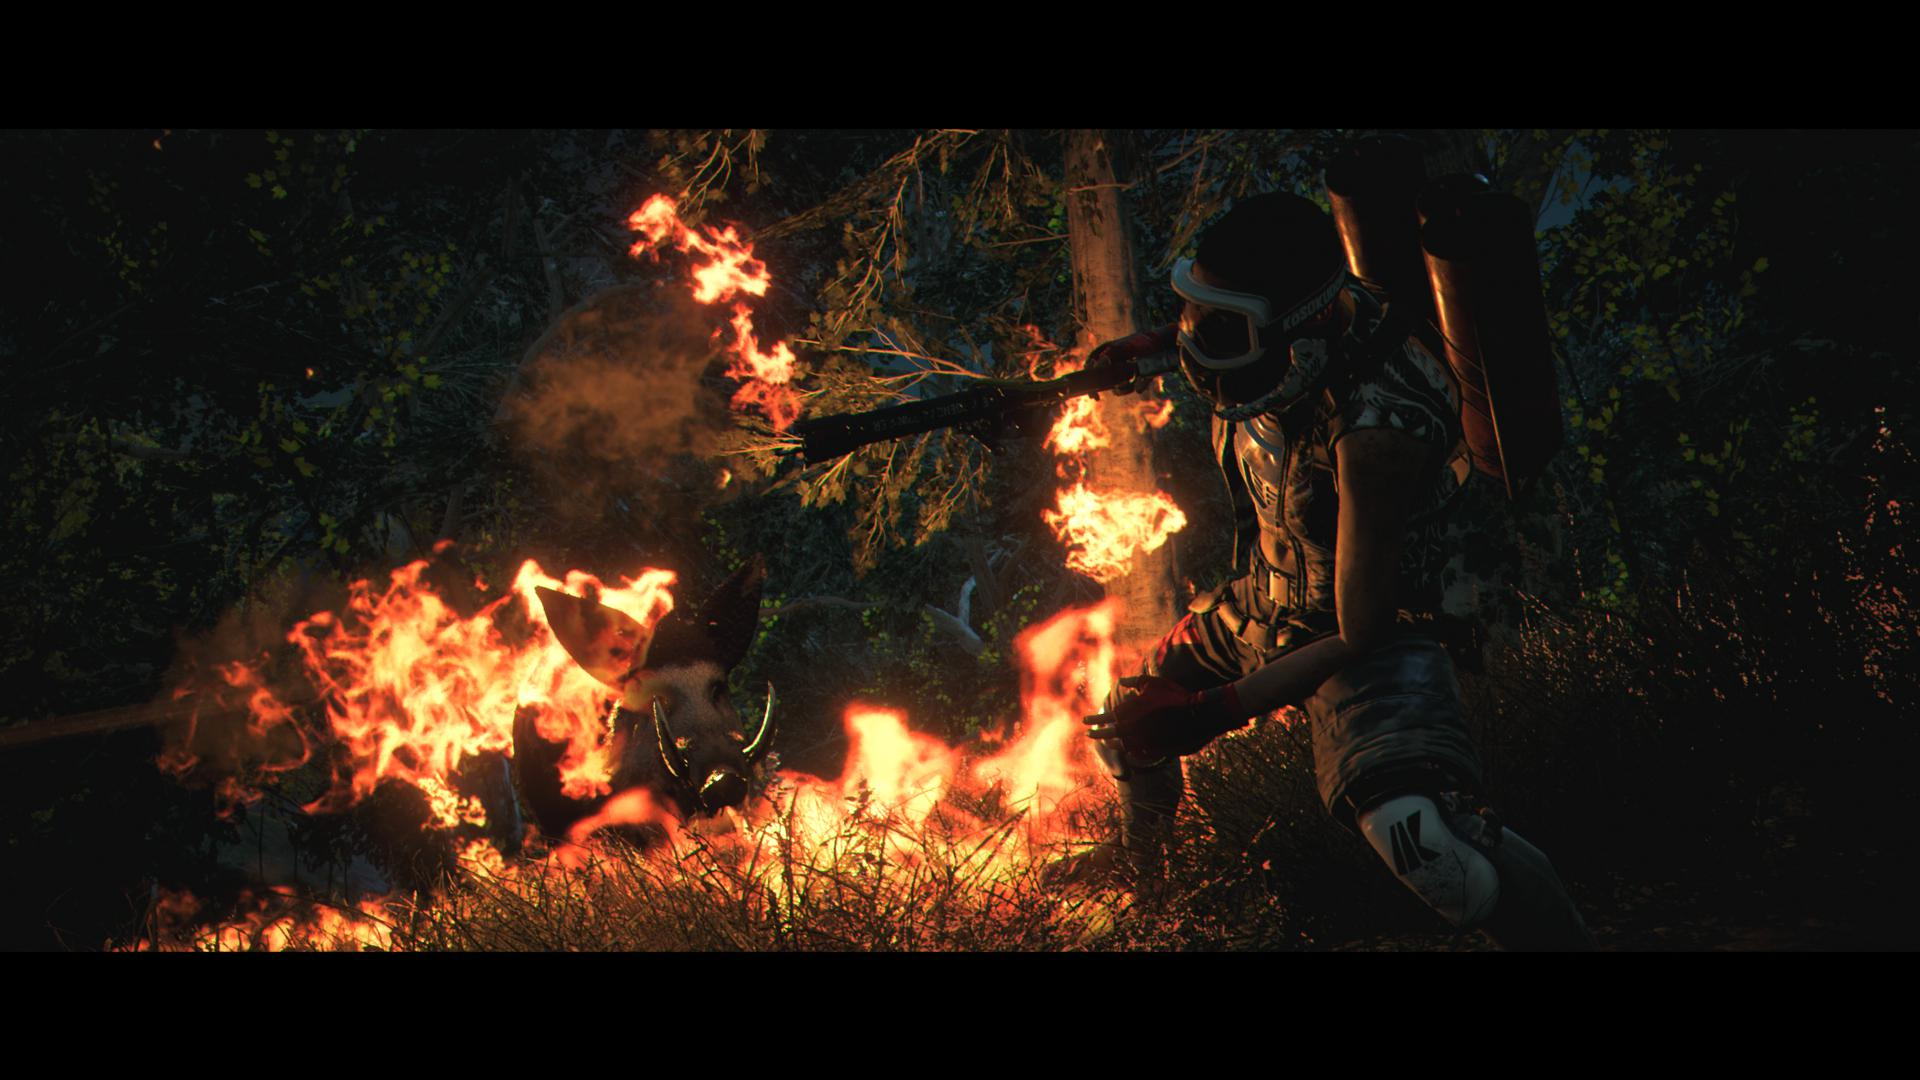 A man with a motorcycle helmet on, welding a flamethrower in the woods at night. The area surrounding them is on fire.